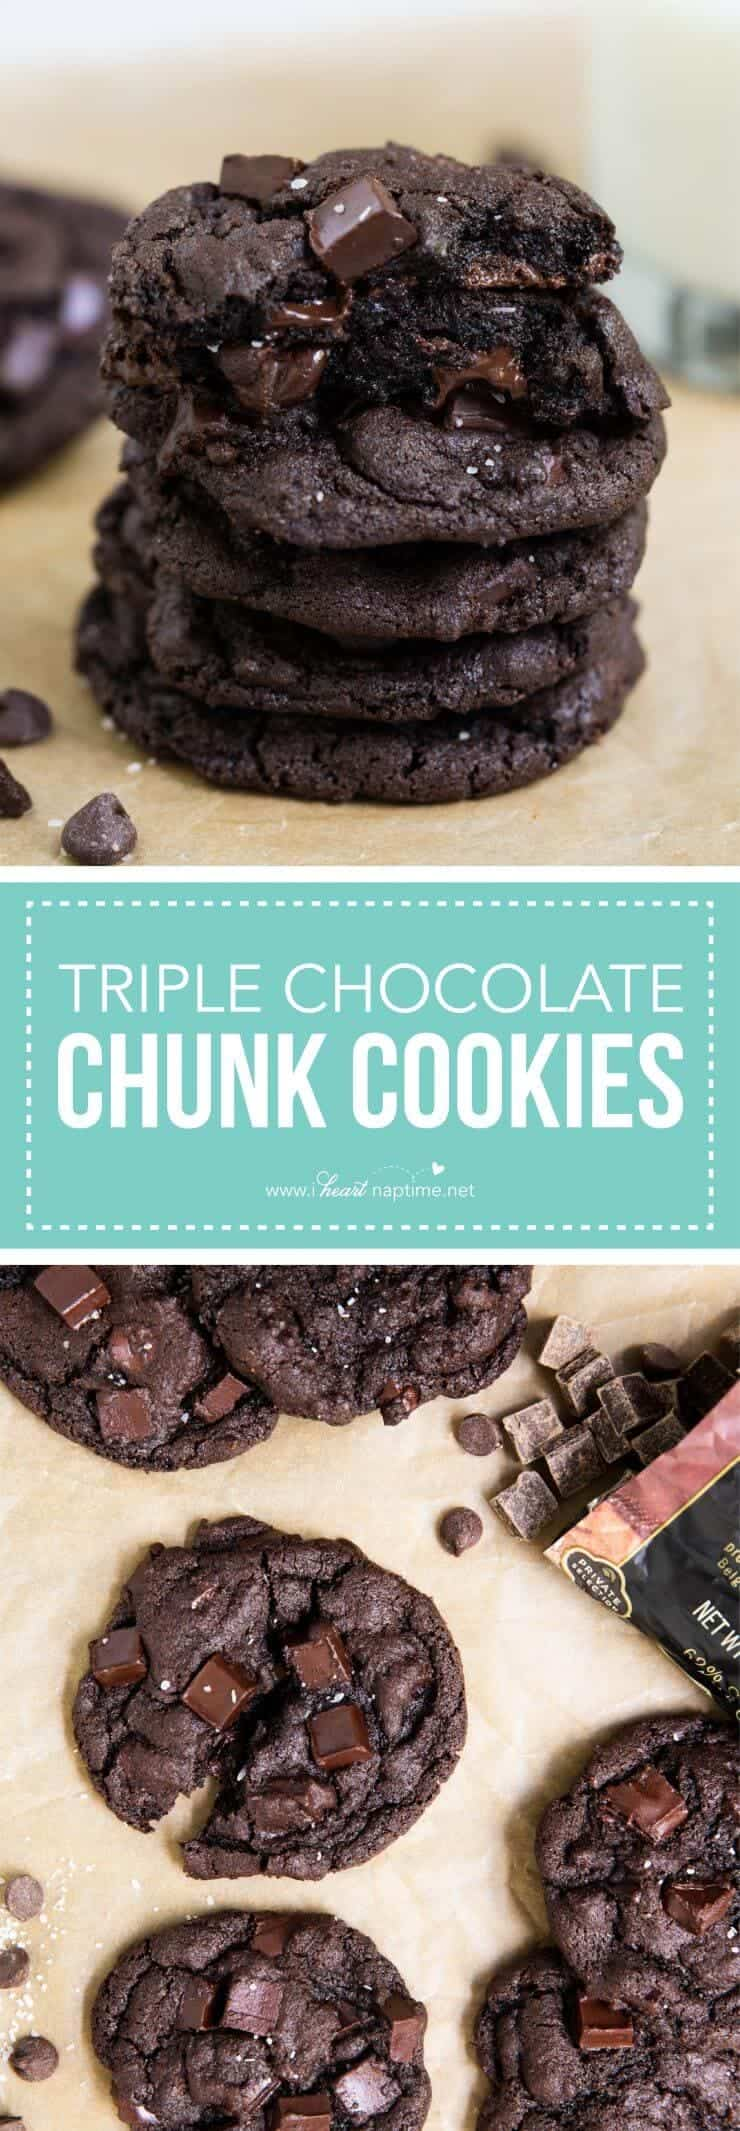 Soft and chewy triple chocolate chip cookies. Made with semi-sweet chips, chocolate chunks and cocoa powder. A chocolate lovers dream cookie!